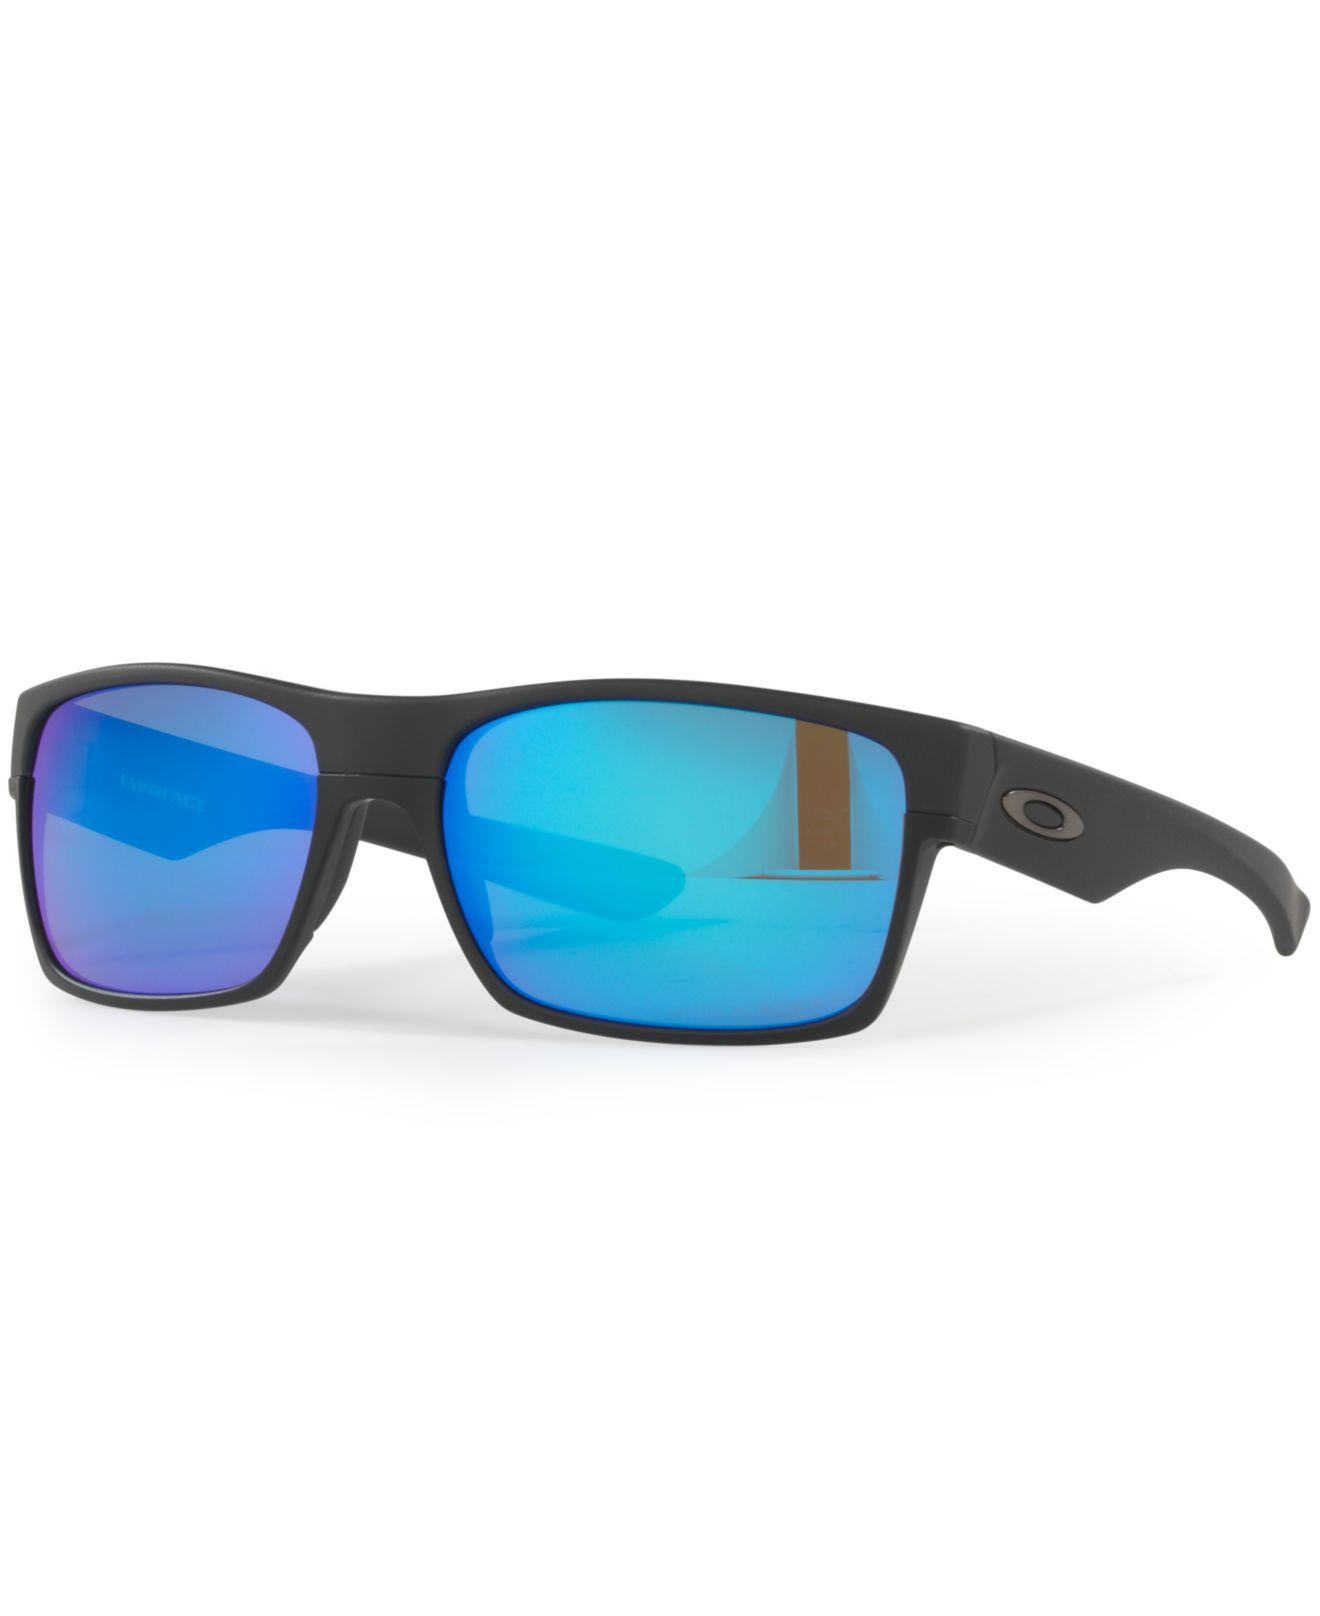 432349c298 Oakley. Men s Blue Polarized Twoface Sunglasses ...